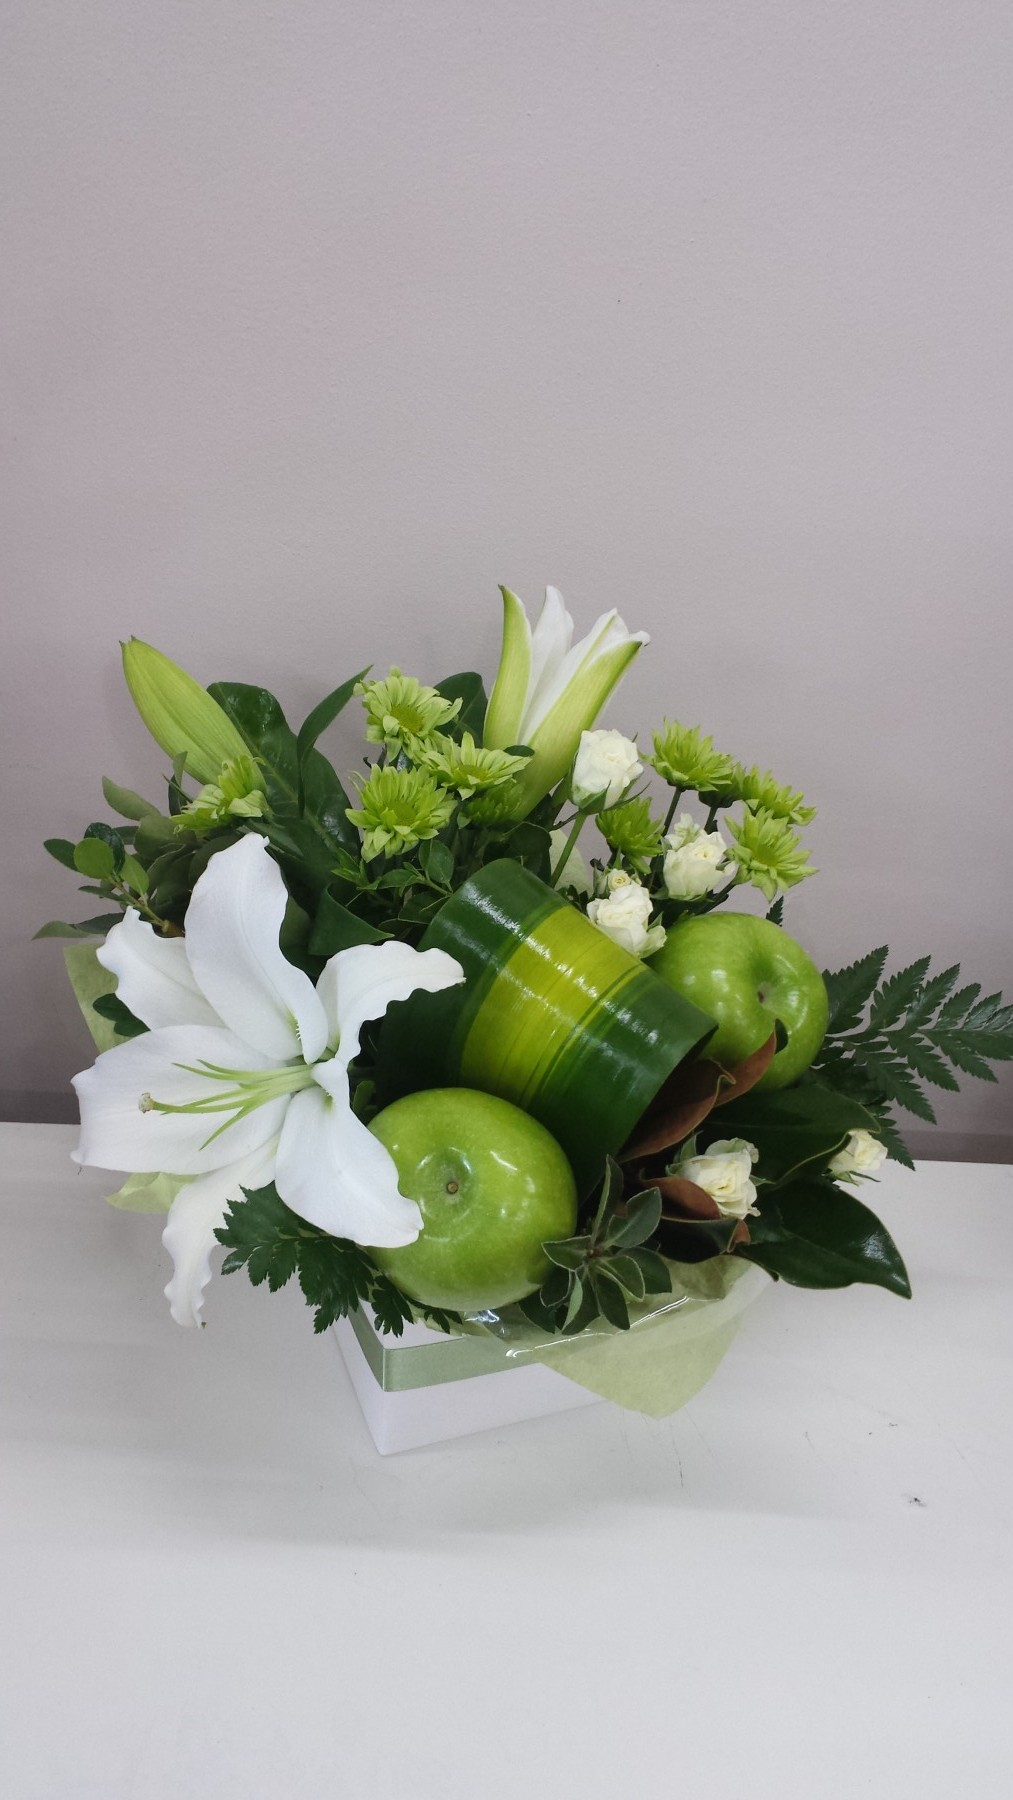 crisp design of white and green flowers with fresh apples